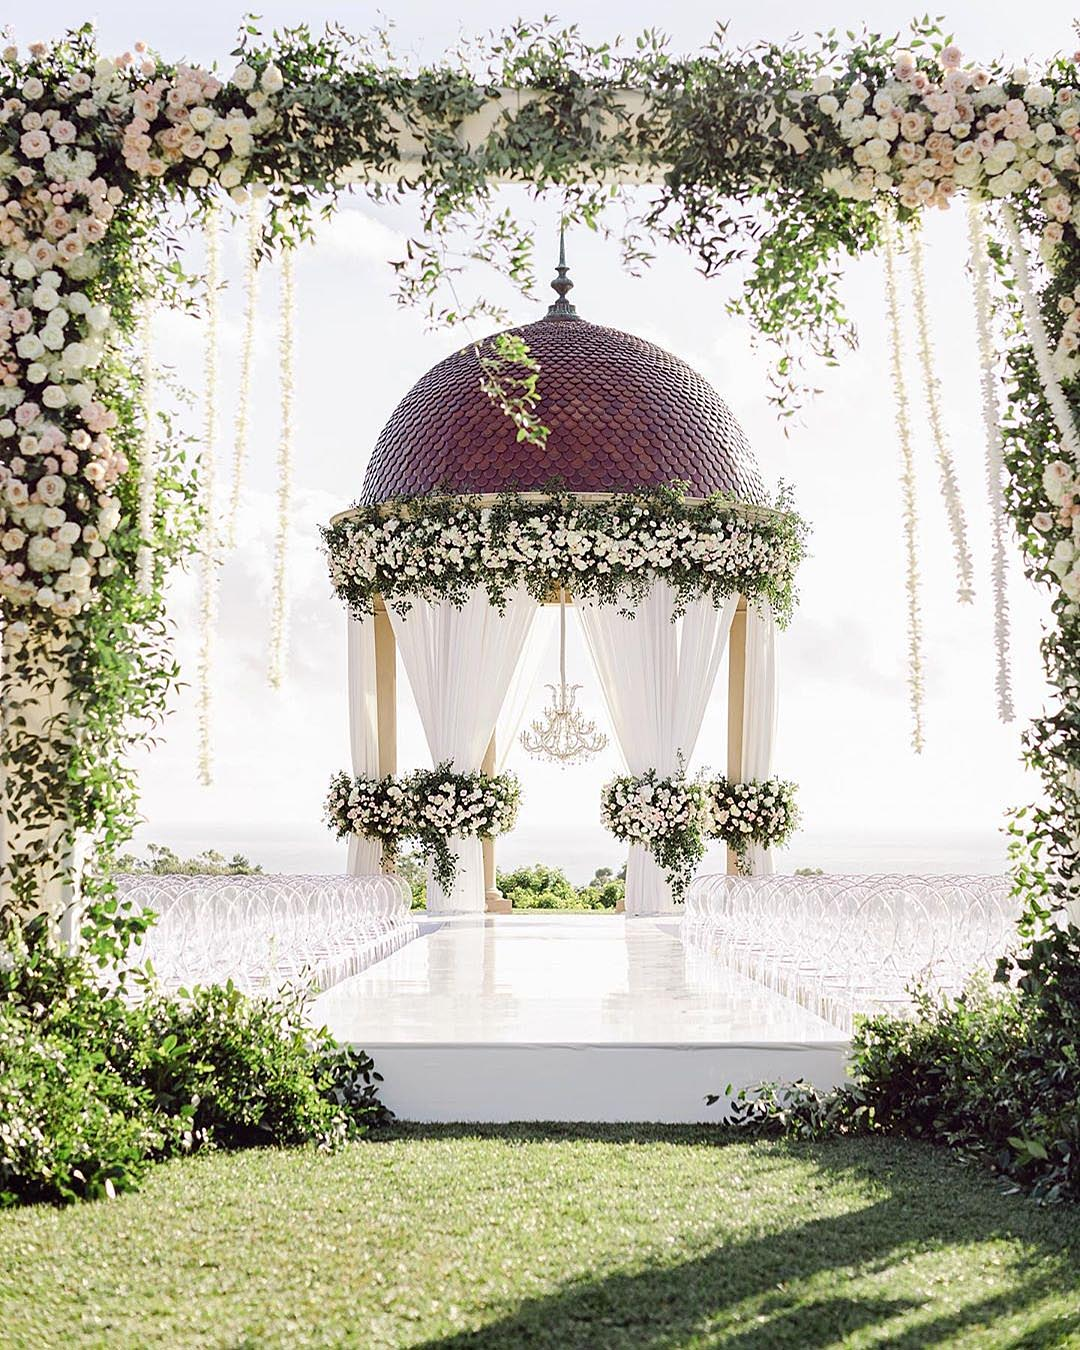 75 Trendiest Wedding Themes In 2020/2021 For Every Bridal Style